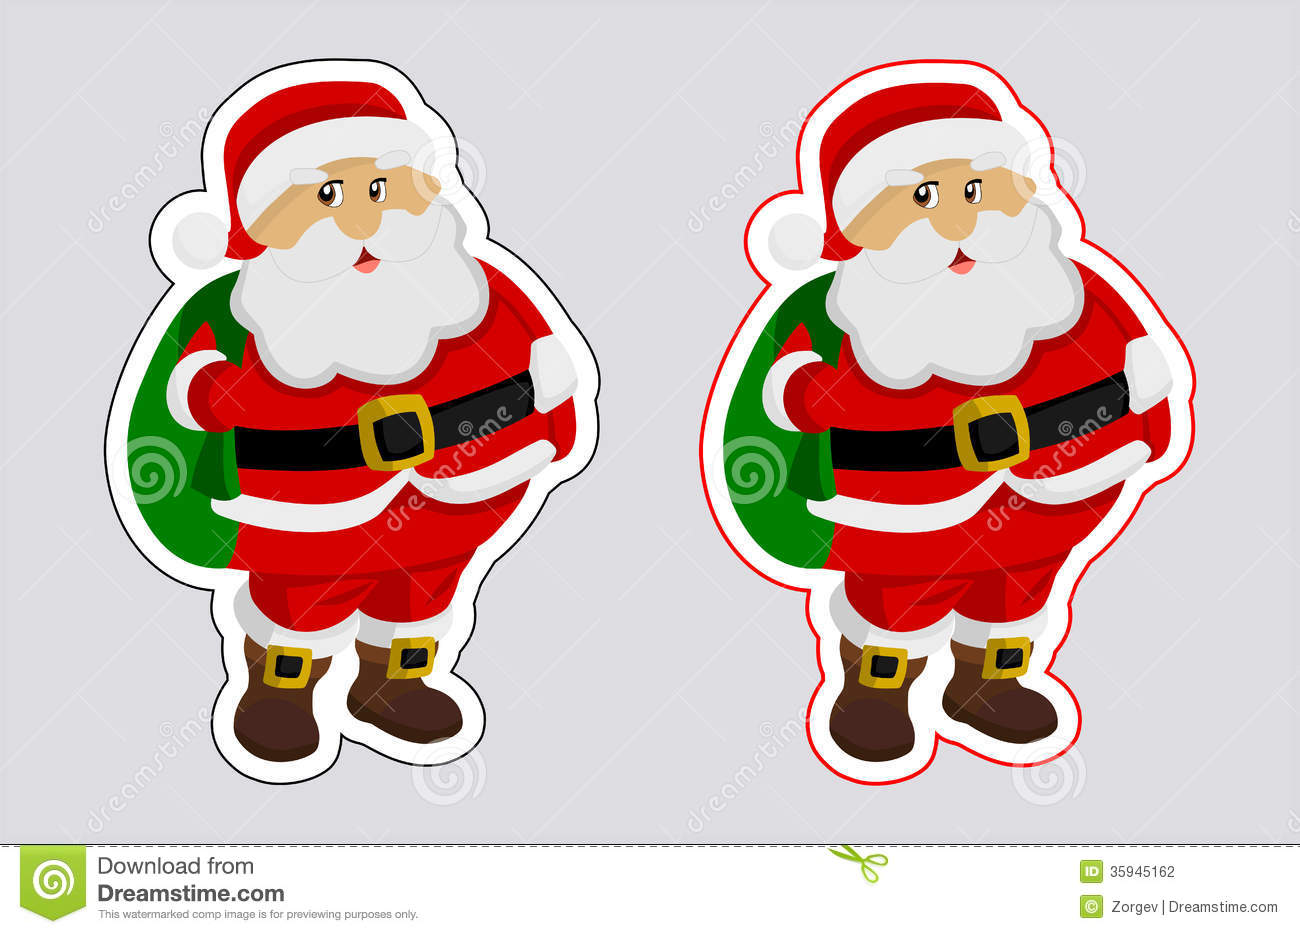 a sticker santa claus with outline color stock illustration